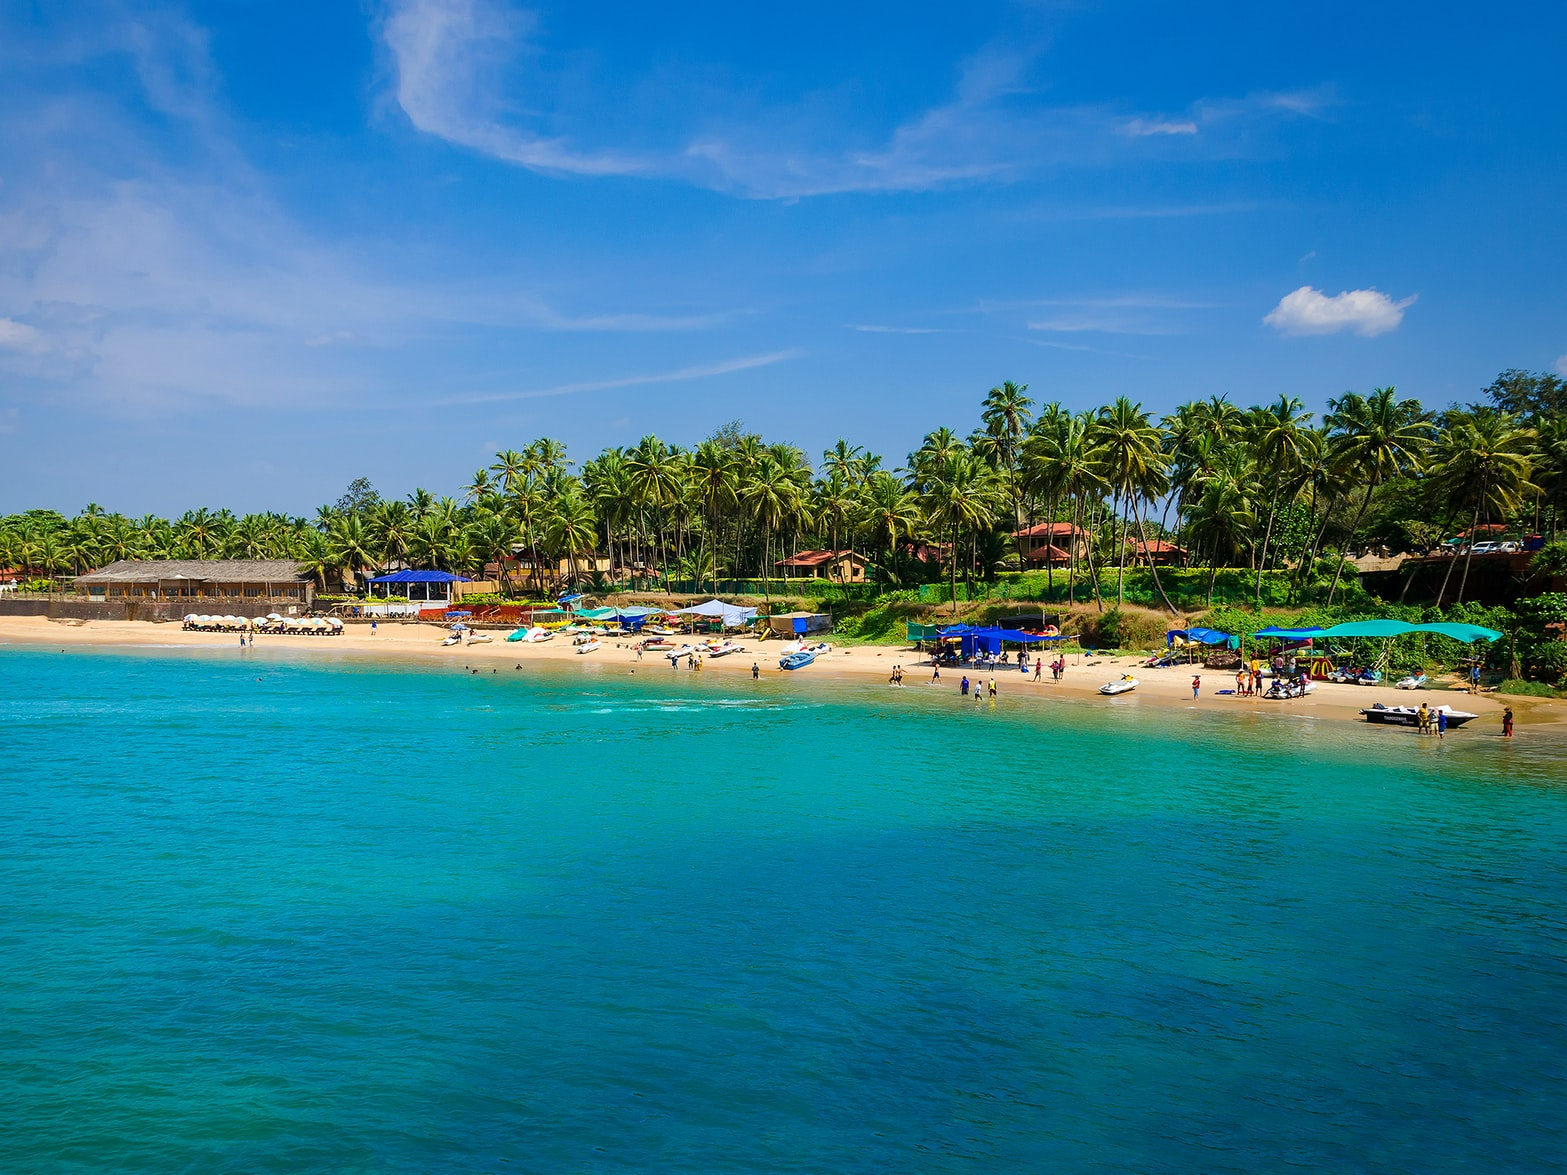 Explore Goa with best hostels, weekend trips, long trips and local experiences in Goa.